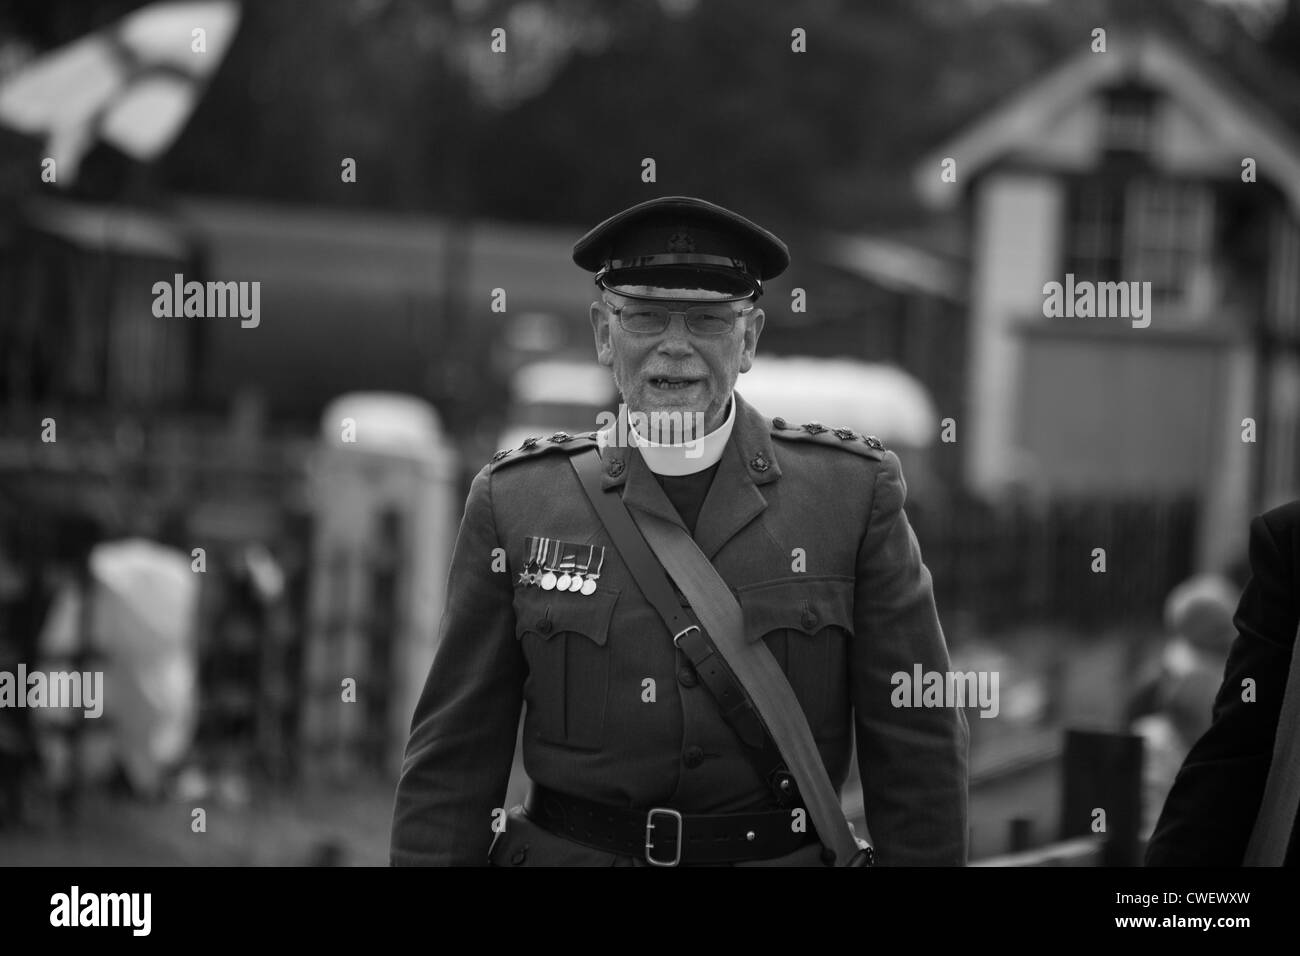 British Army Chaplain in Railway environment - Stock Image